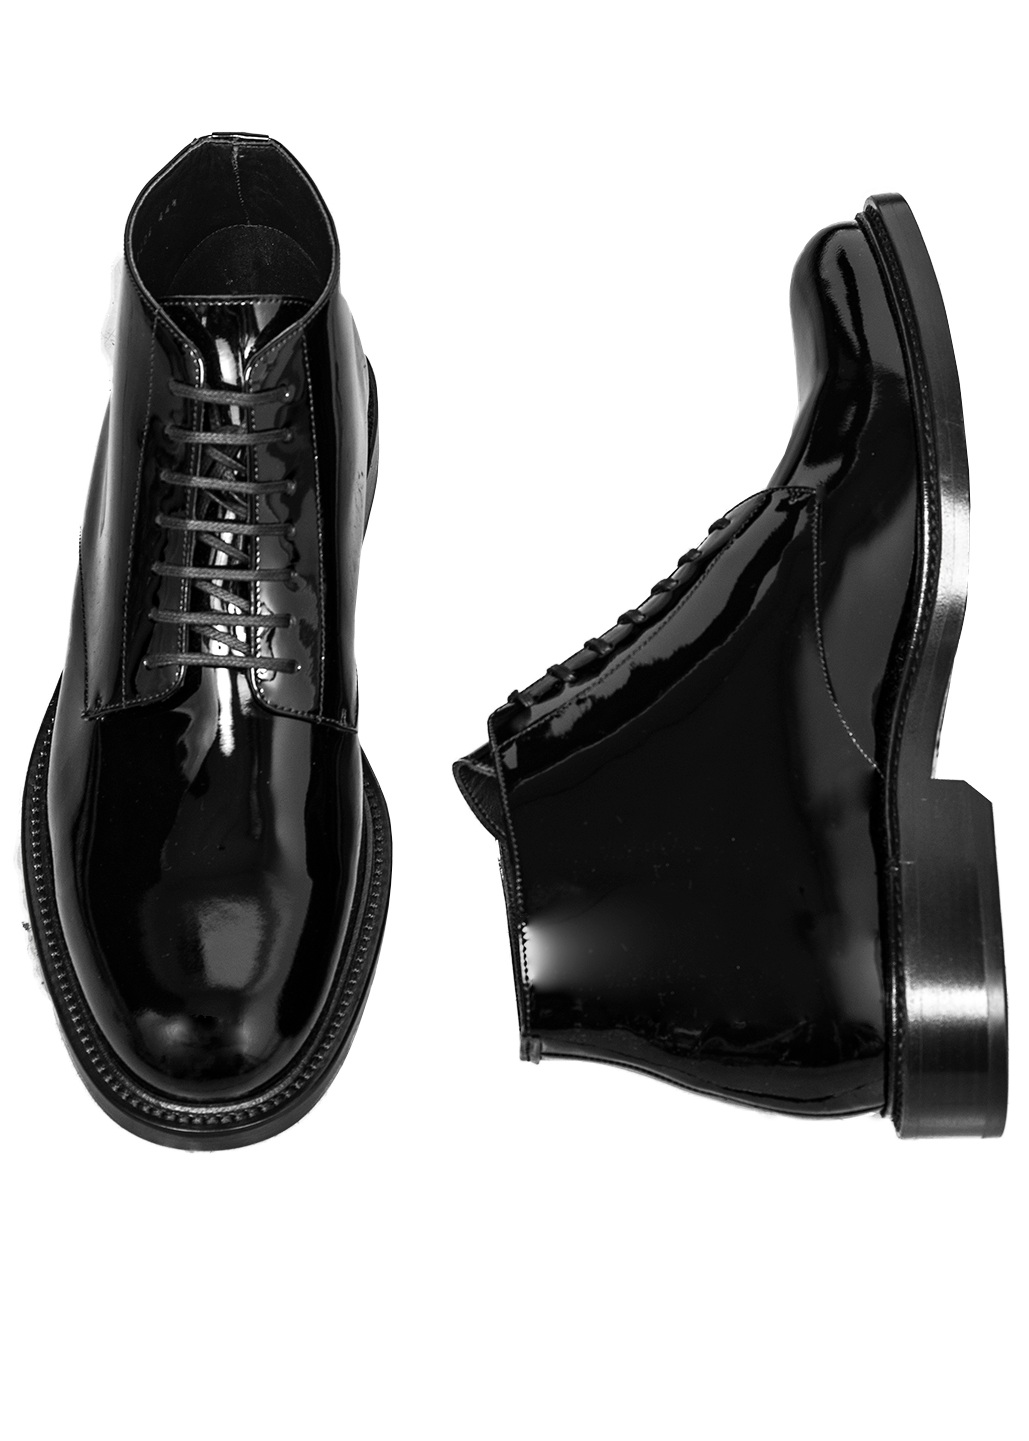 "11.5 SAINT LAURENT BOOT ""SAINT-BOOT02"""